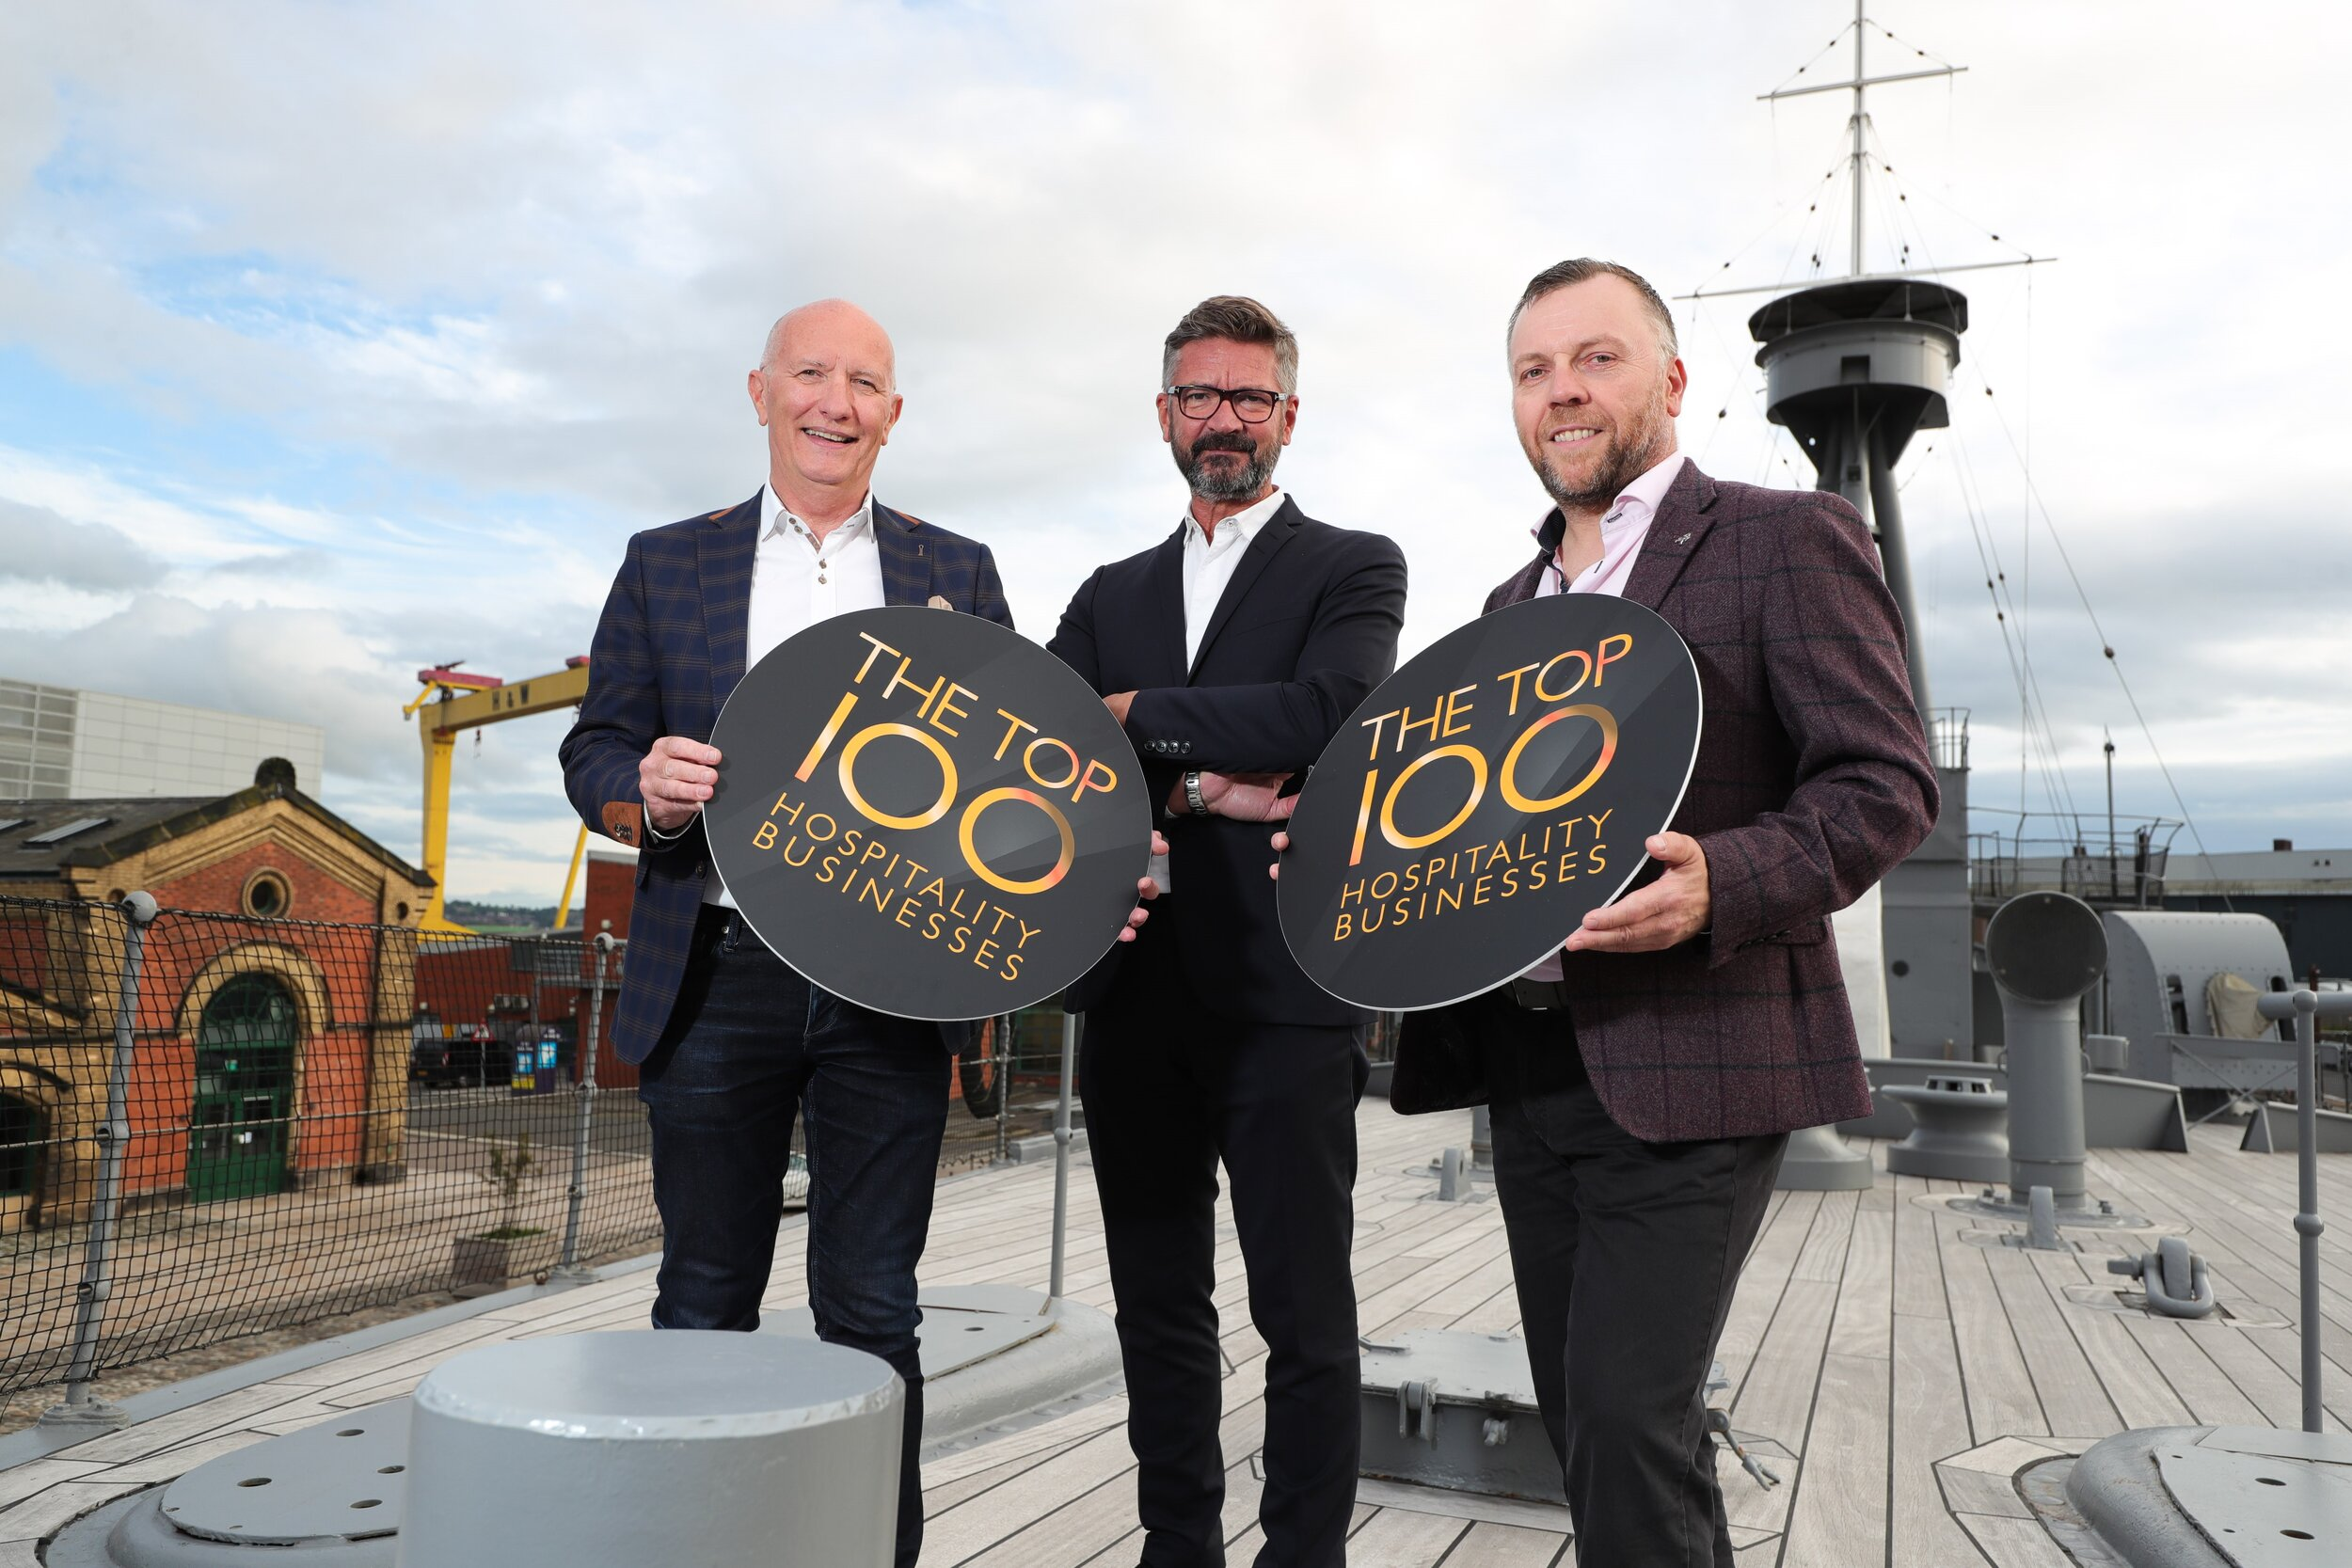 Launching the Top 100 Hospitality Businesses Awards in Northern Ireland for 2020 on HMS Caroline:  Colin Neill, Chief Executive Hospitality Ulster, Joris Minne, Food Critic and Chair of the Top 100 judging panel, Mark Stewart, Hospitality Ulster Chairman.